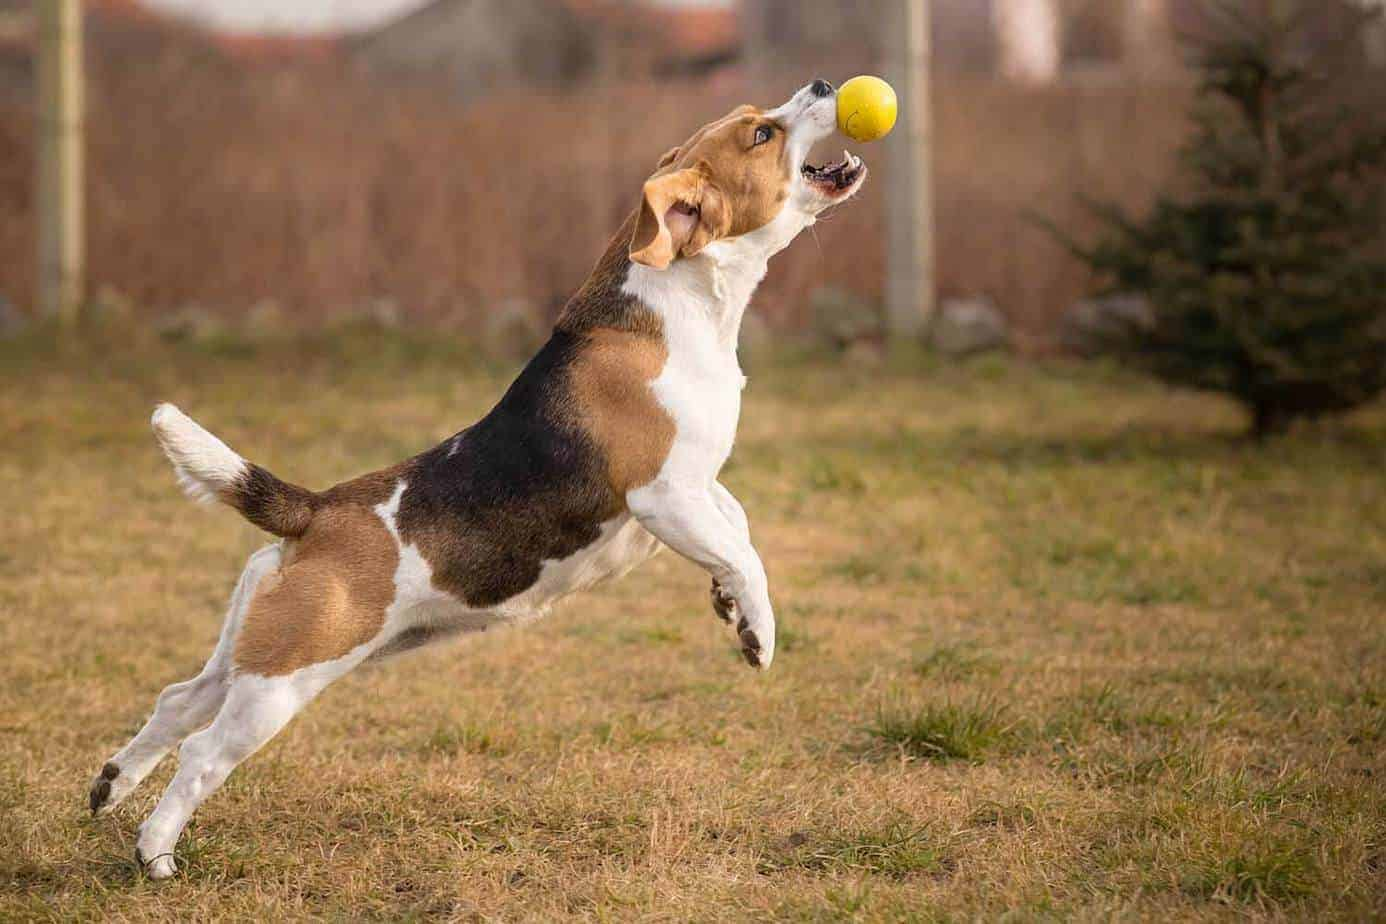 When Do Beagles Stop Growing? Photo of a Beagle jumping to catch a ball